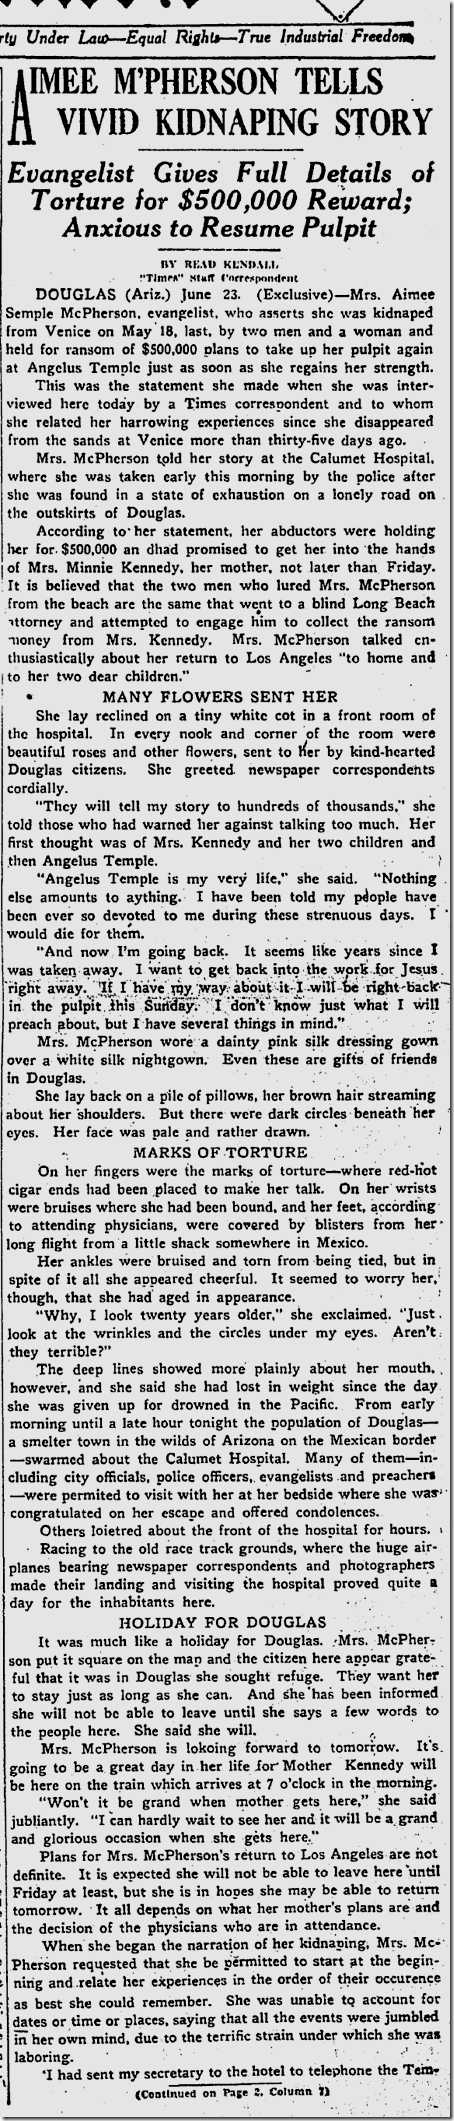 June 24, 1926, Aimee Semple McPherson